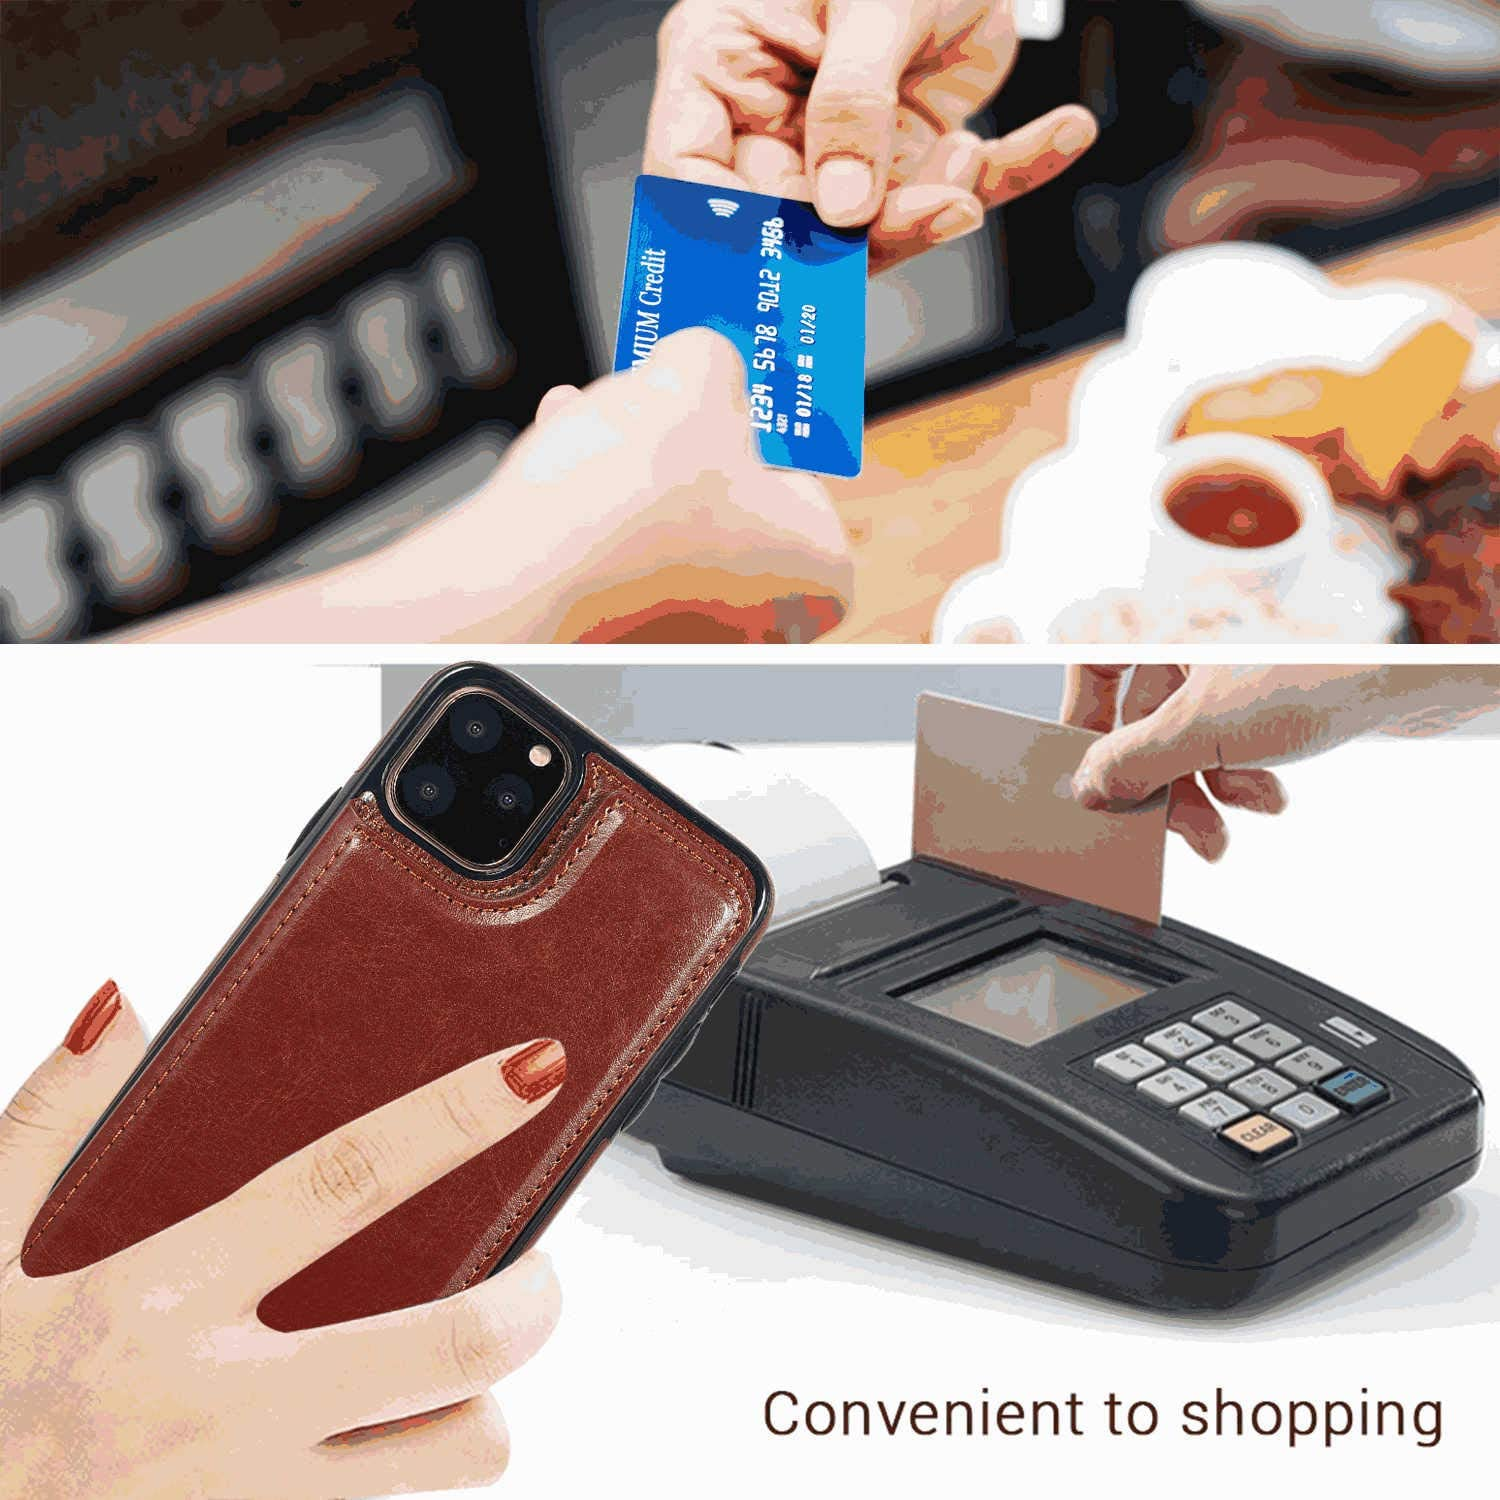 Leather Case for Samsung Galaxy S7 Edge Flip Cover fit for Samsung Galaxy S7 Edge Business Gifts with Waterproof-case Bags